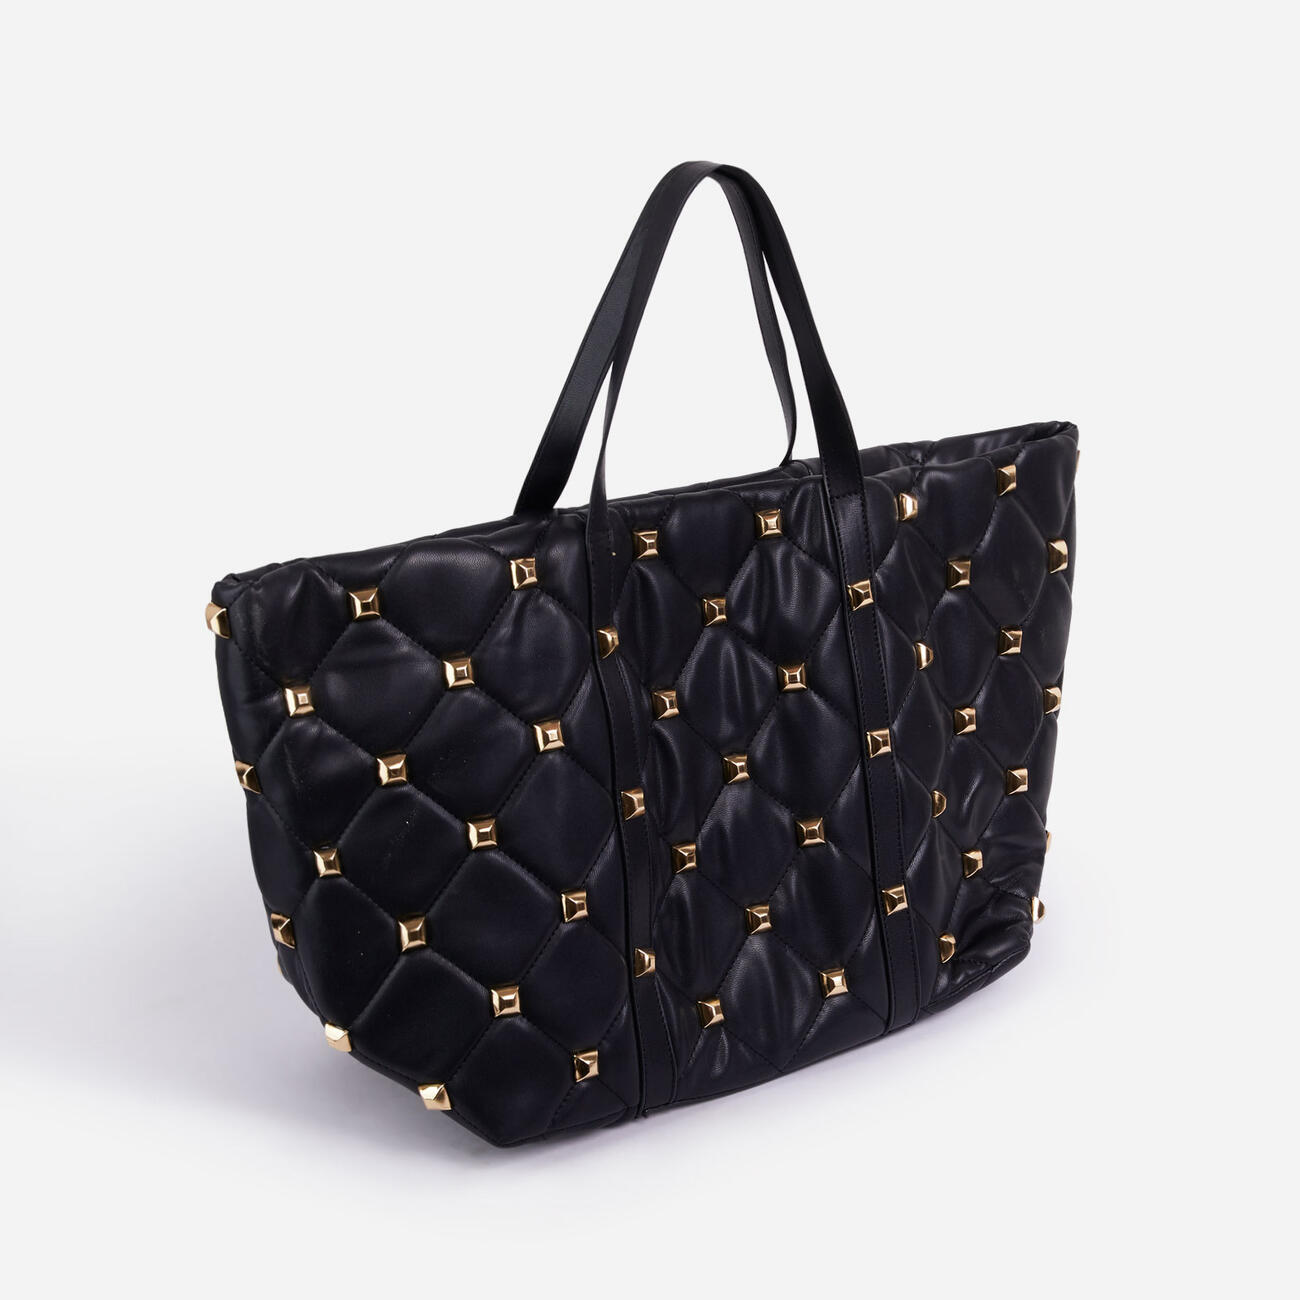 Kym Studded Detail Oversized Tote Bag In Black Faux Leather Image 2